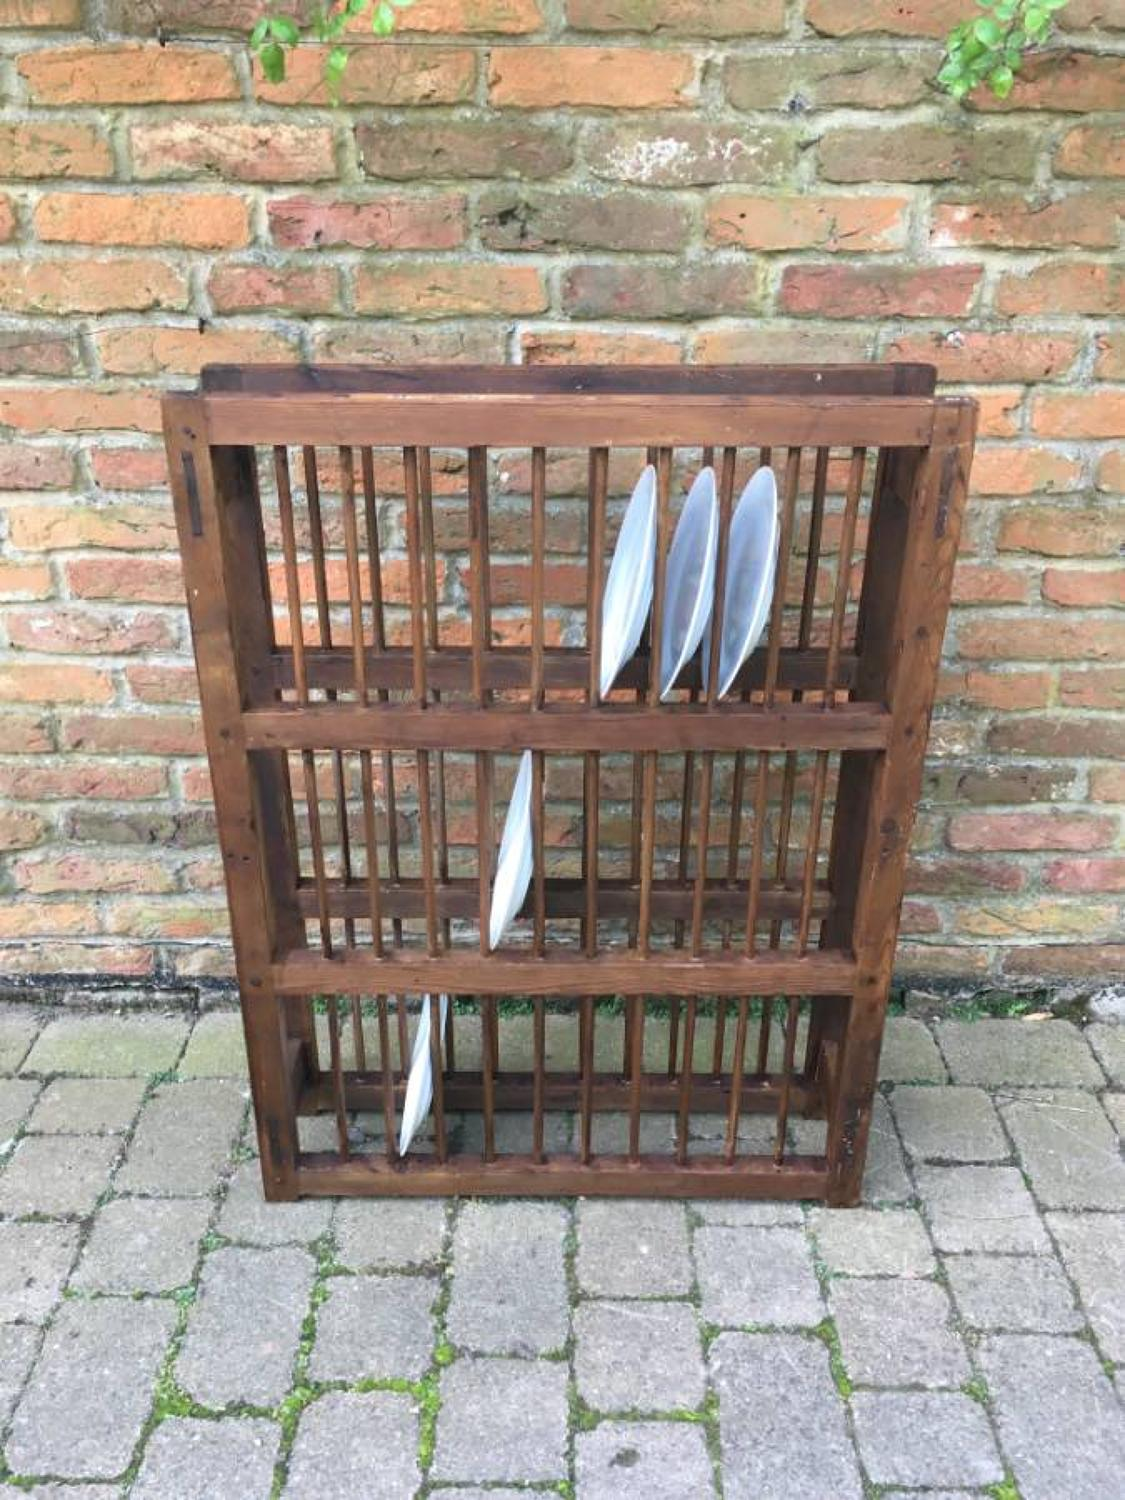 ... Large Early Victorian Pine Three Tier Plate Rack - picture 3 ... & Large Early Victorian Pine Three Tier Plate Rack in Furniture ...